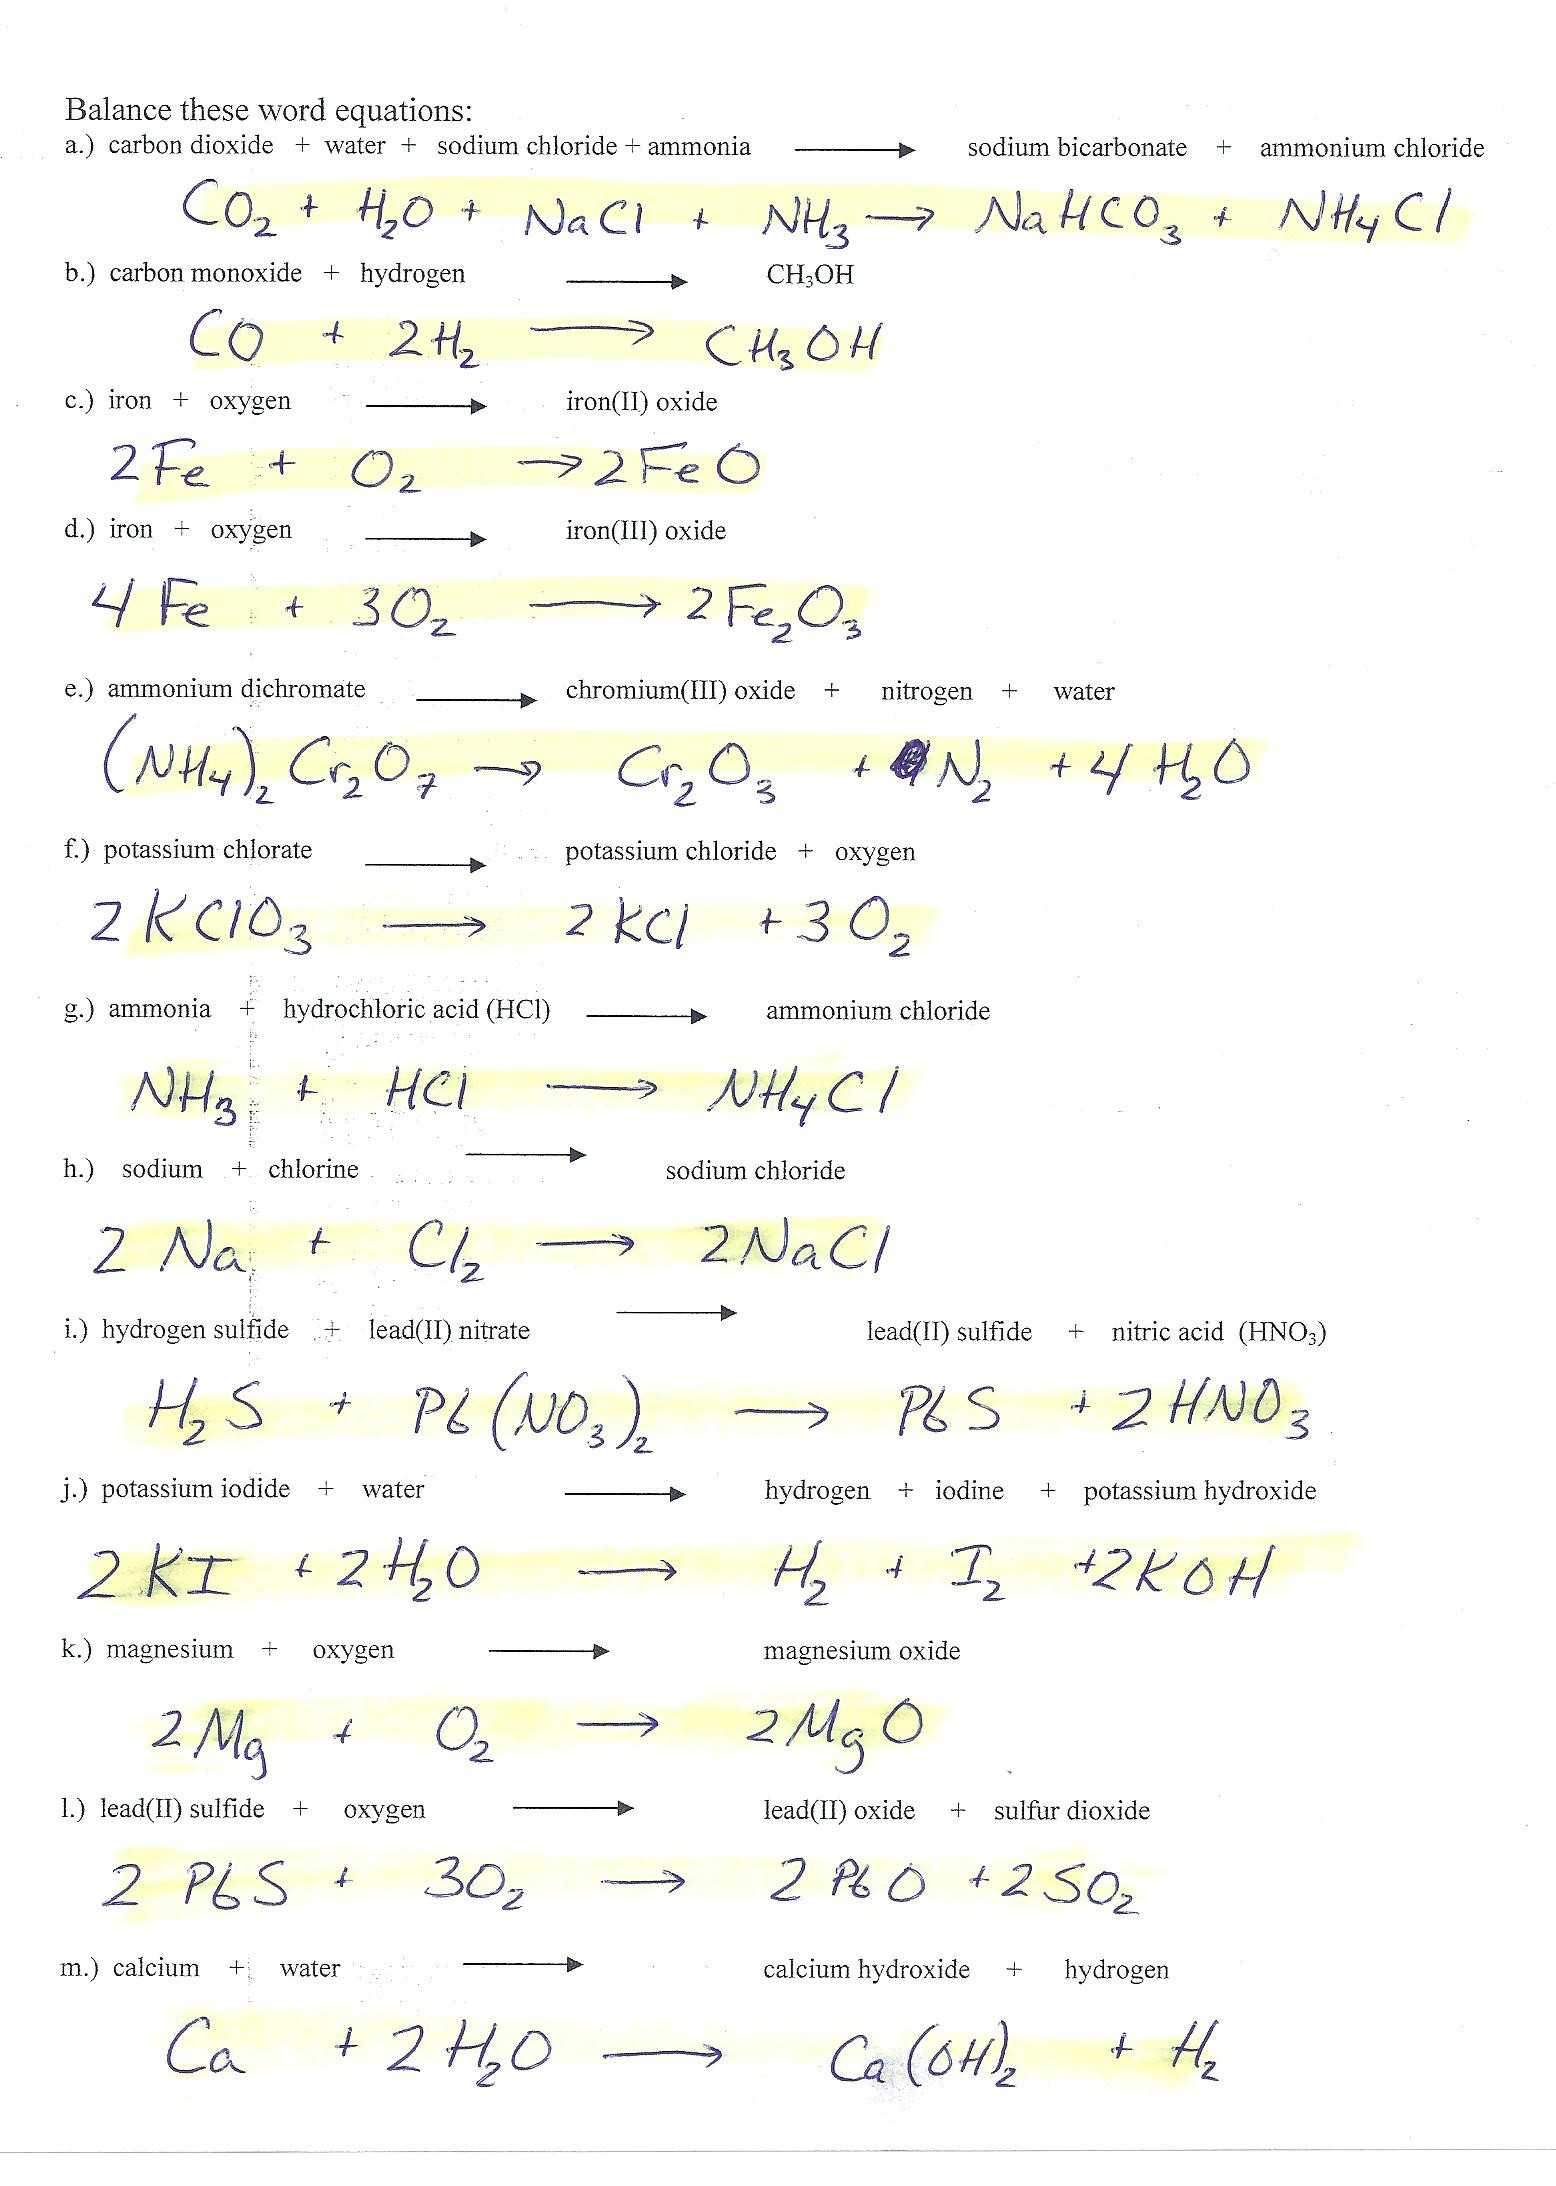 Ionic Compounds Worksheet Answers As Well As Writing And